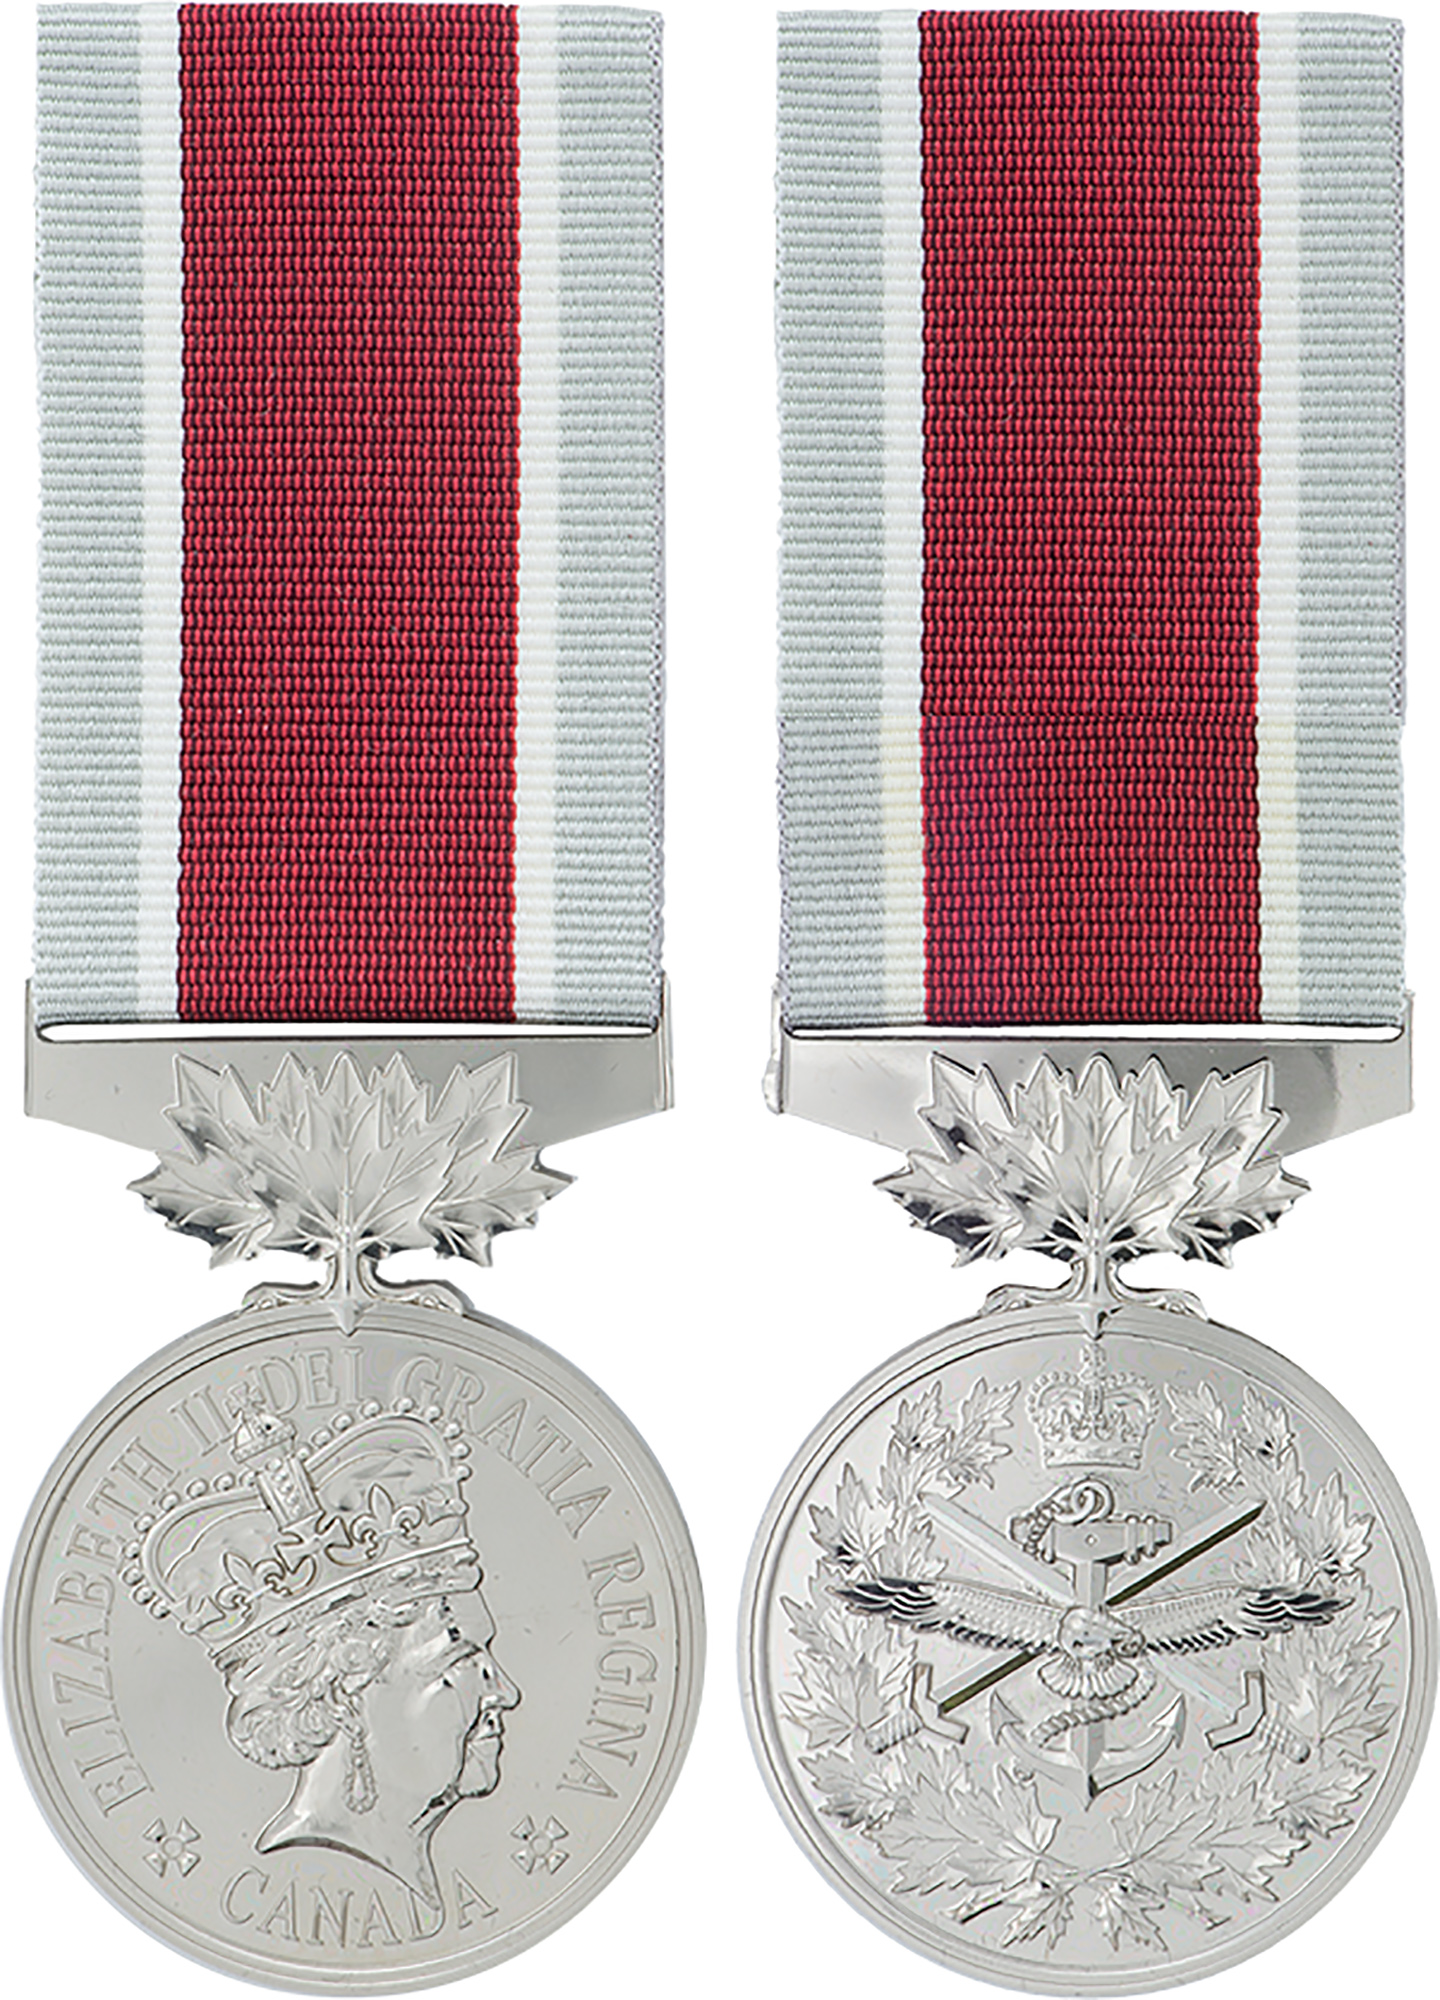 Front and rear images of a Canadian General Service Medal